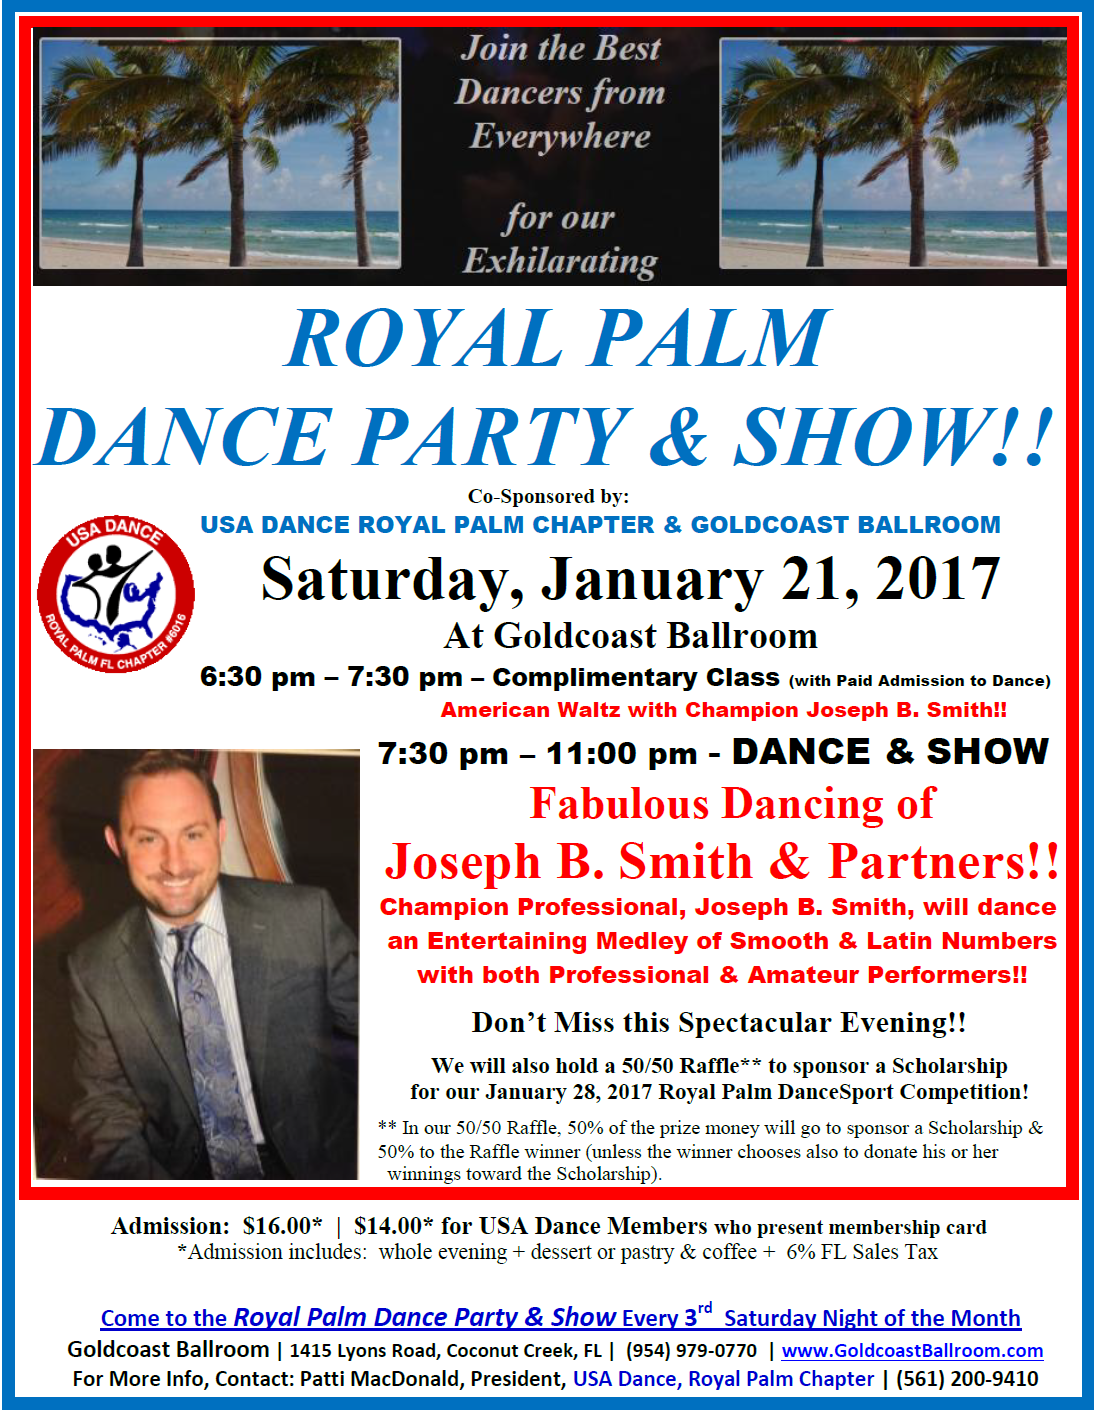 Click to Print Flyer: Royal Palm Dance Party & Show - January 21, 2017 - Featuring the Fabulous Dancing of Joseph B Smith & Partners!!